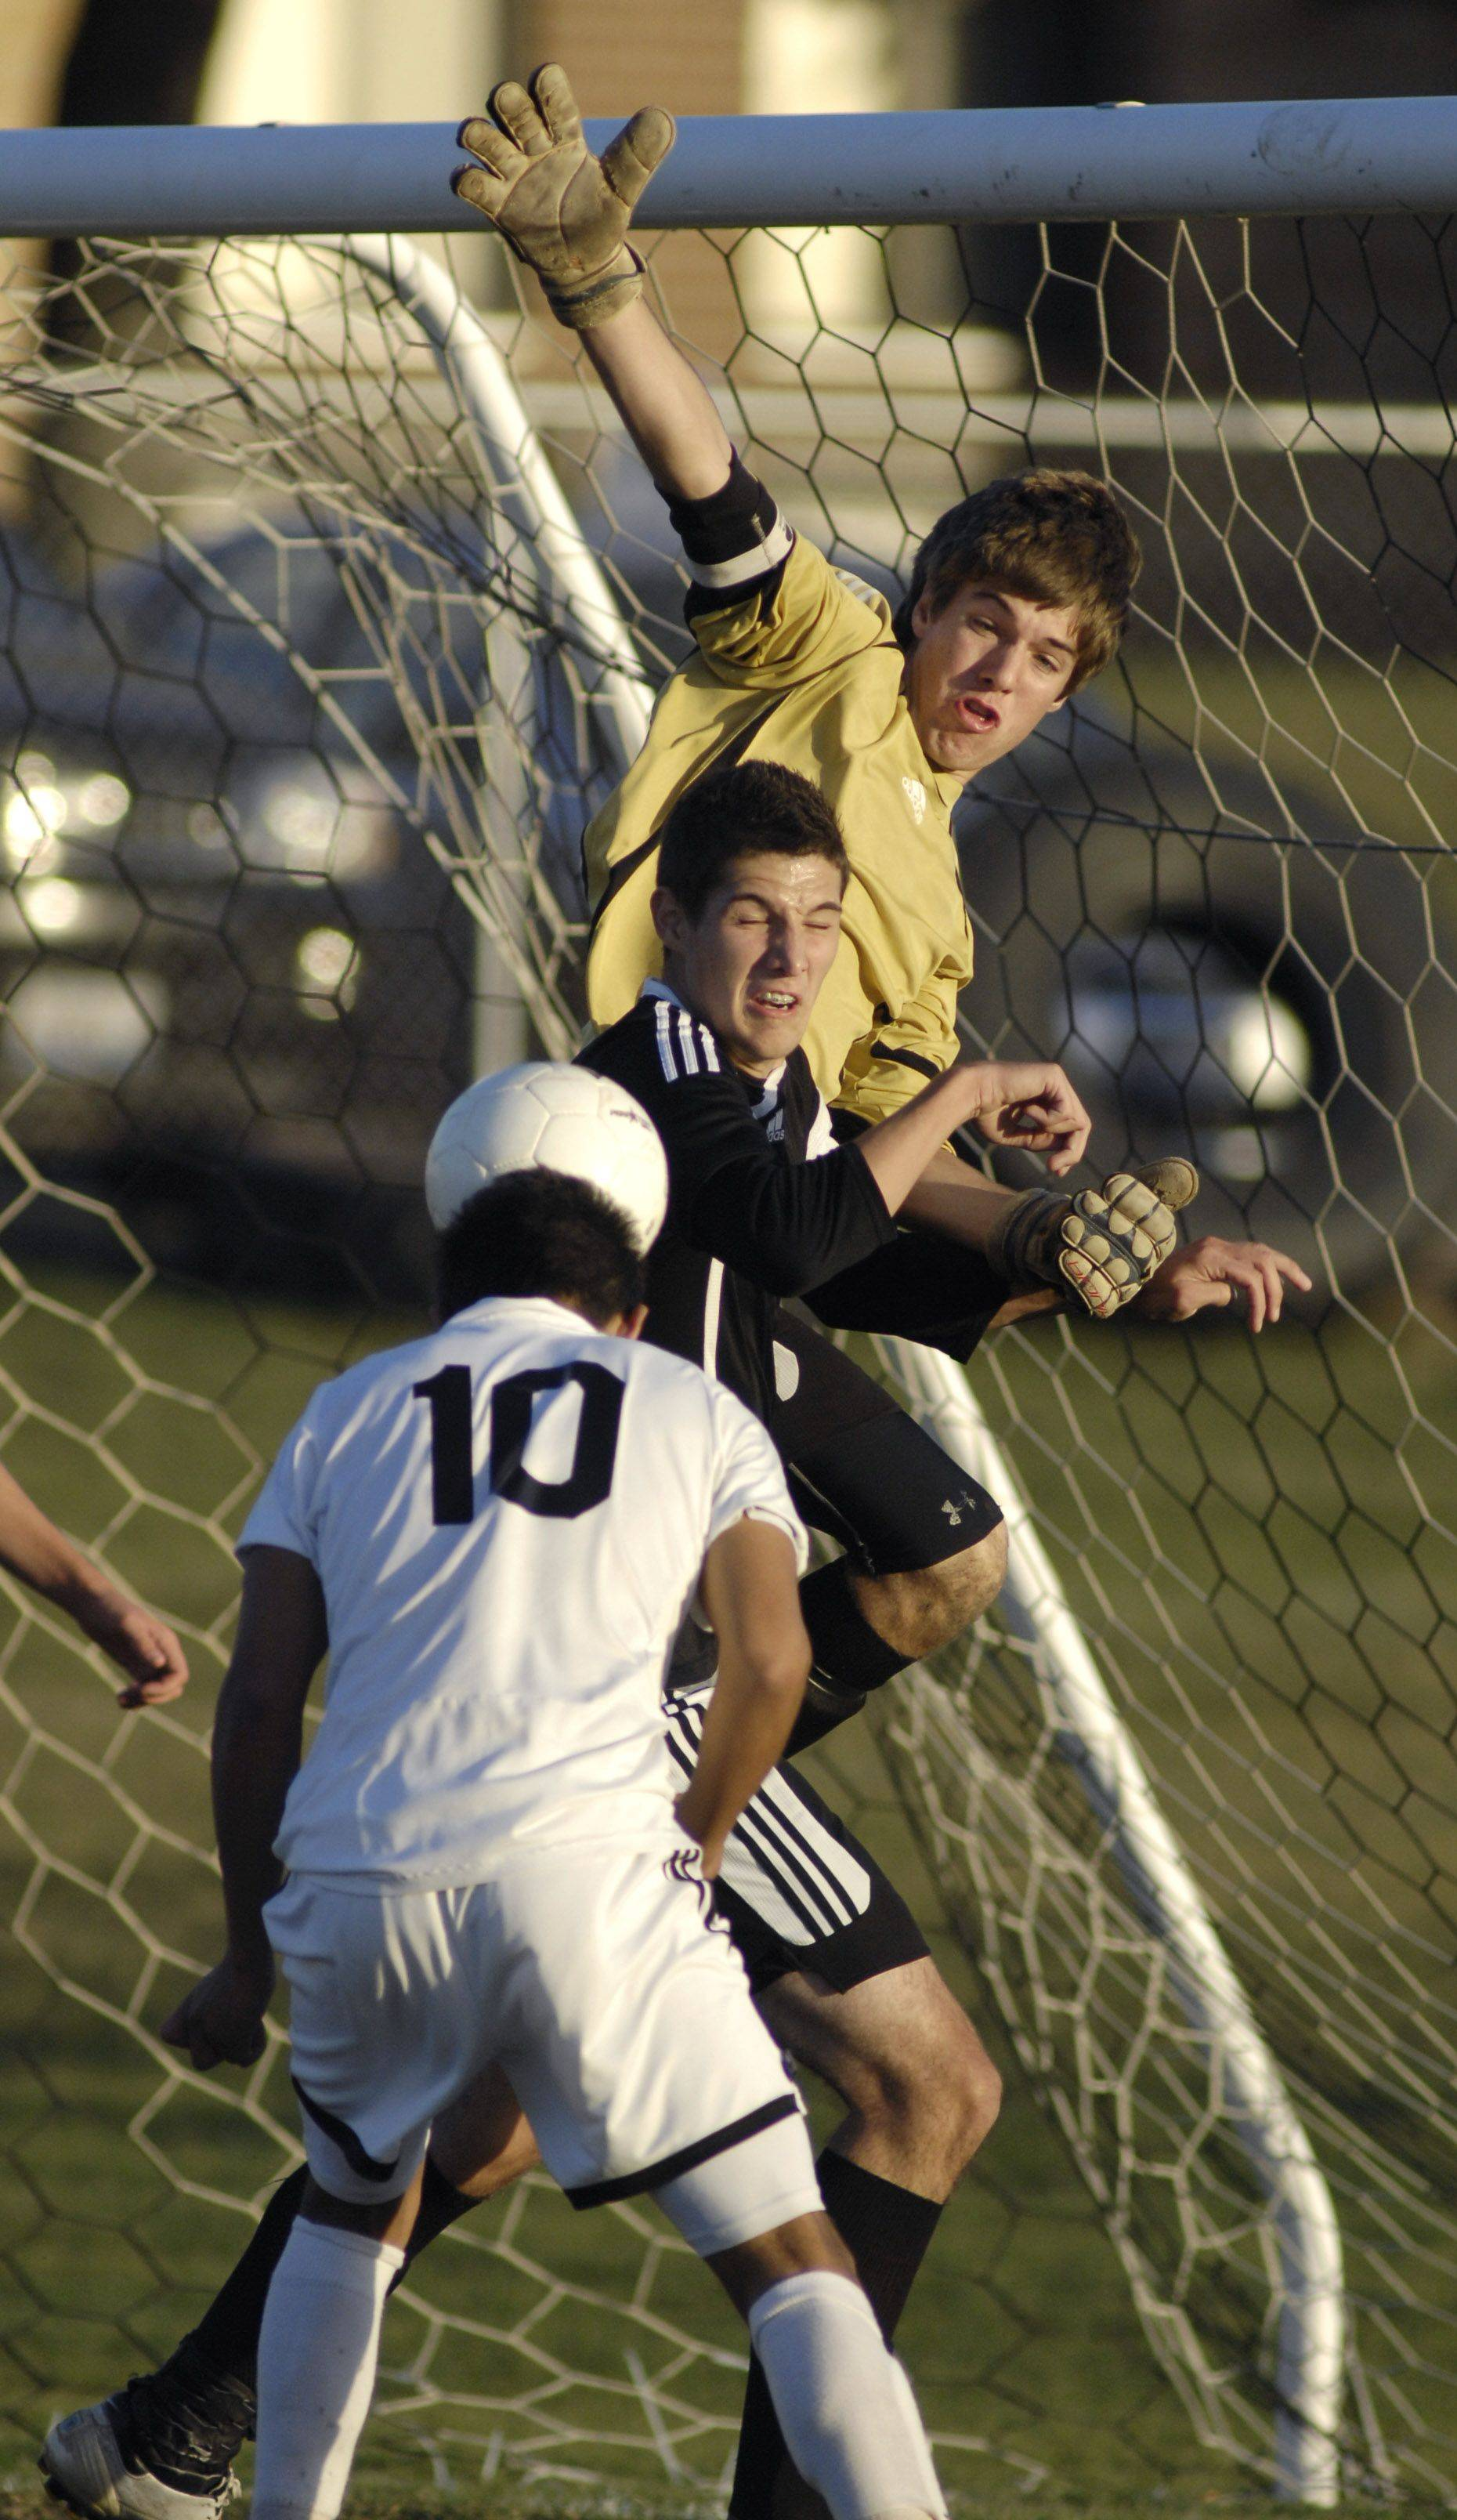 Sycamore's Justin David and goalie Jonathan Hamil block a header by Kaneland's Jordan Escobedo during Wedneday's regional match.